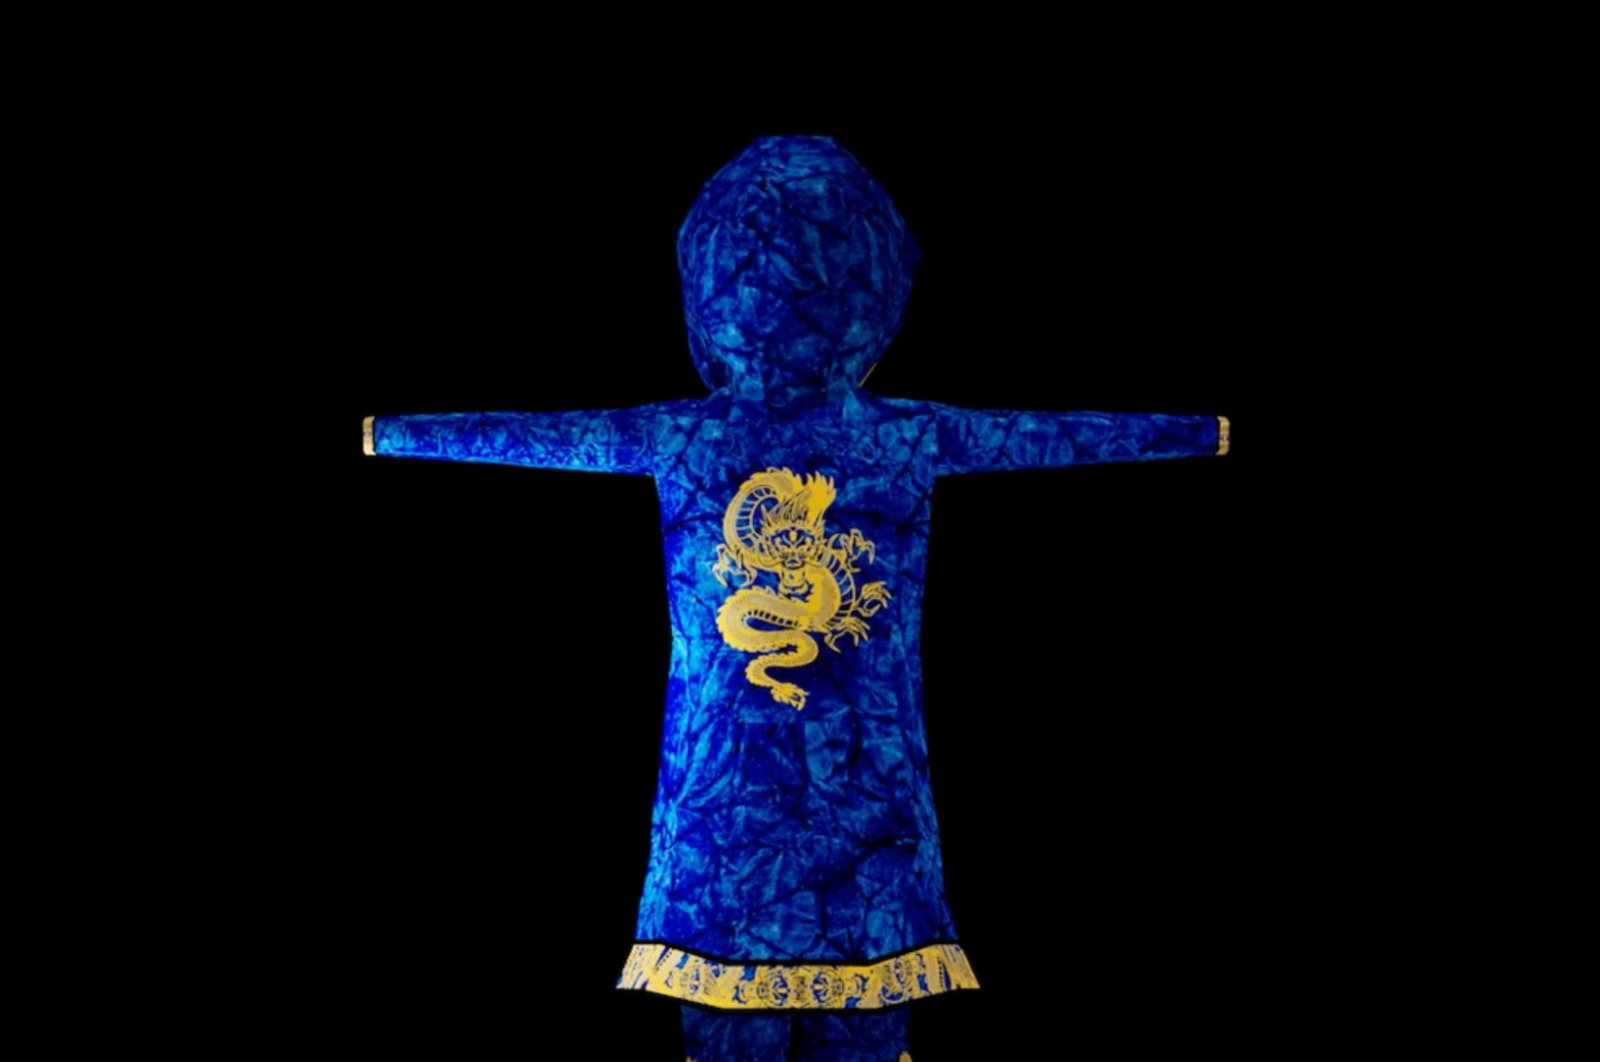 """An undated handout image of virtual clothing piece """"The Blue Dragon Warrior"""" kimono, a wearable item in the digital world of """"Decentraland,"""" which according to its creator Hiroto Kai it's his """"first mythic wearable creation, one out of 10 ever created."""" (Hiroto Kai/Handout via Reuters)"""